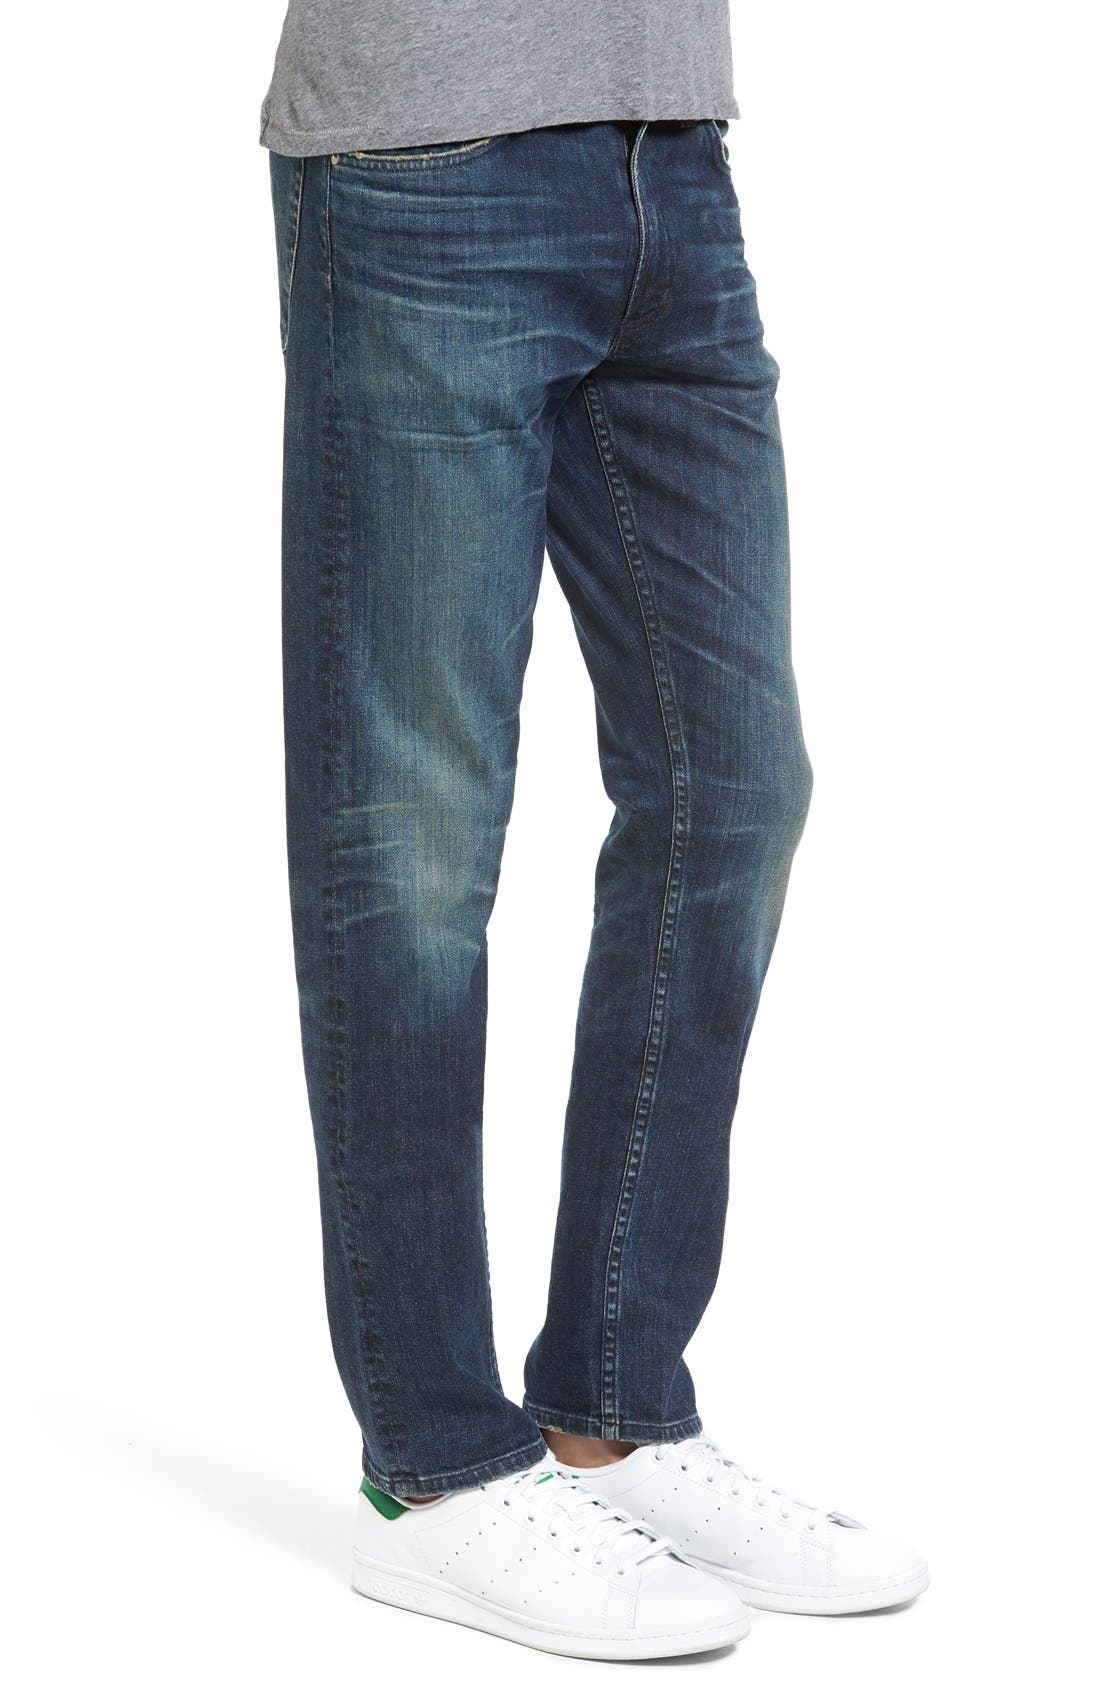 Bowery Slim Fit Jeans,                             Alternate thumbnail 4, color,                             463